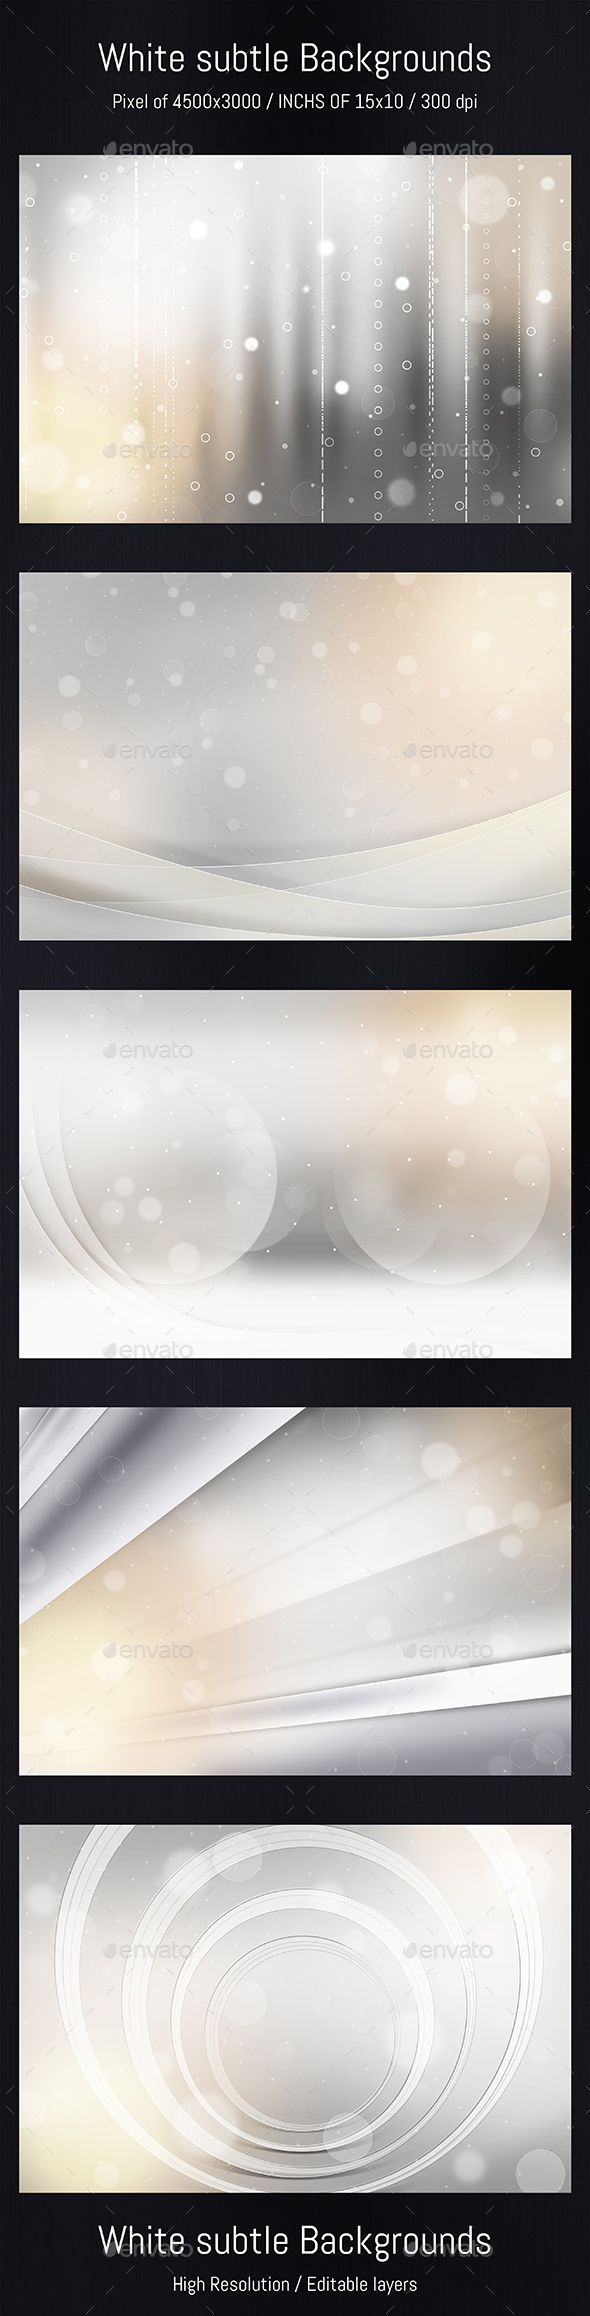 White Subtle 05 Backgrounds - Miscellaneous Backgrounds